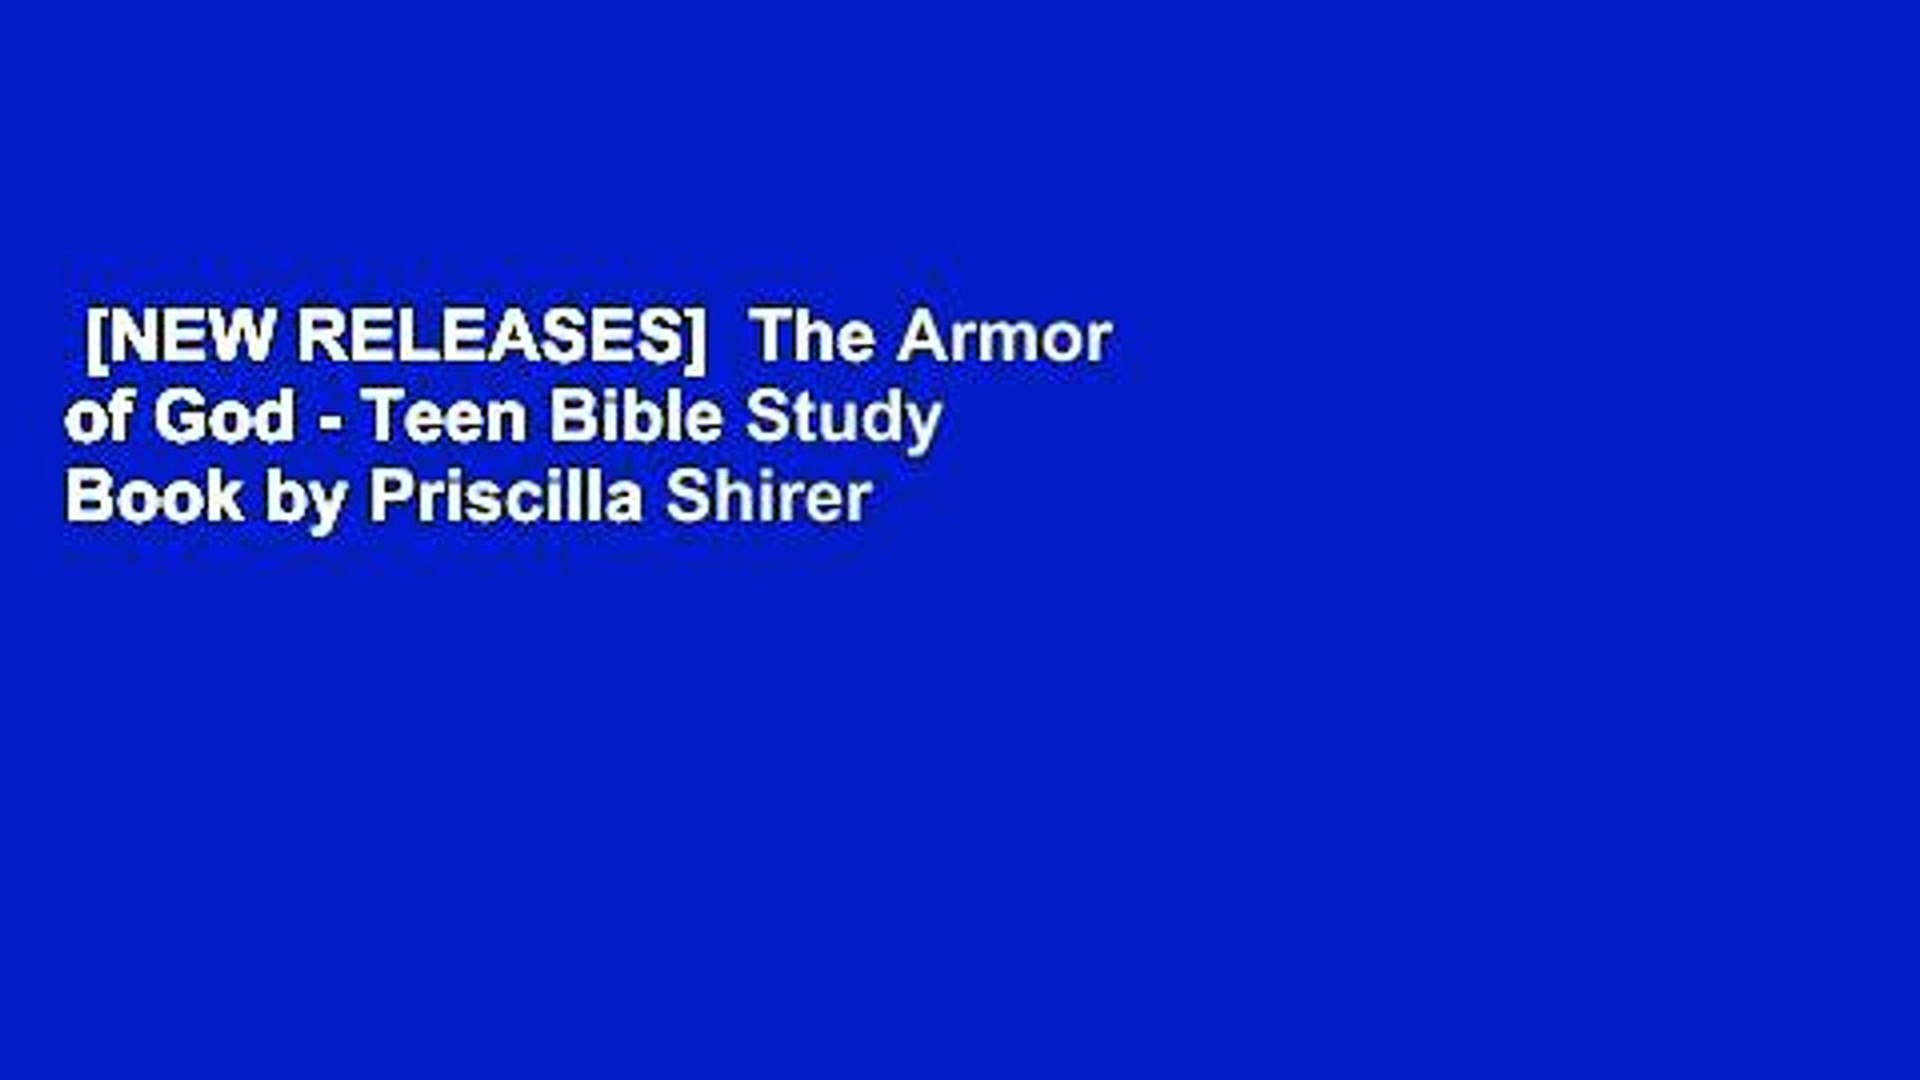 [NEW RELEASES] The Armor of God - Teen Bible Study Book by Priscilla Shirer